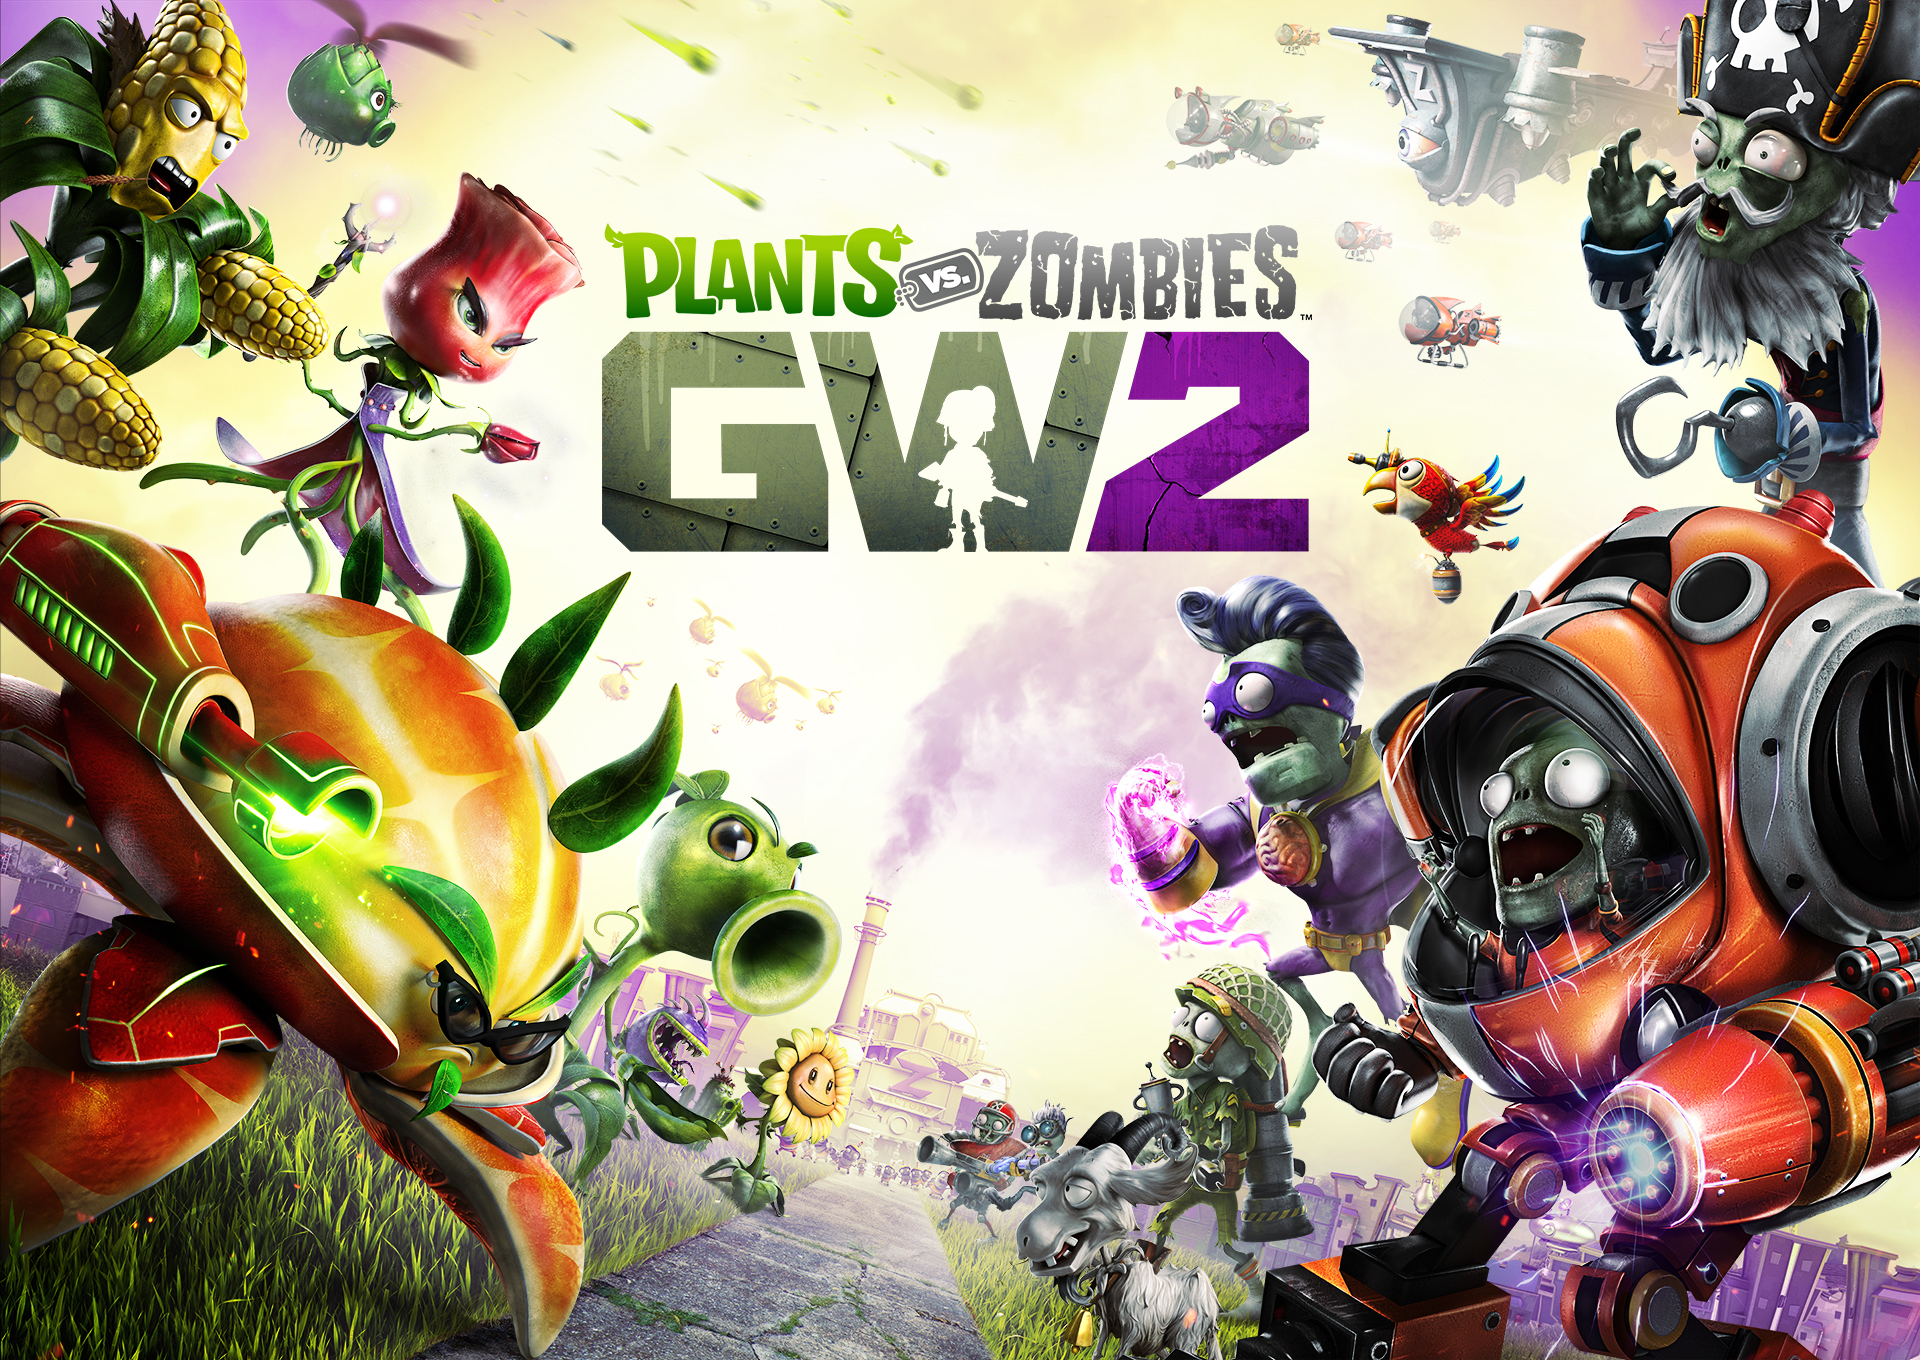 Plants vs zombies garden warfare 2 for Plante vs zombie garden warfare 2